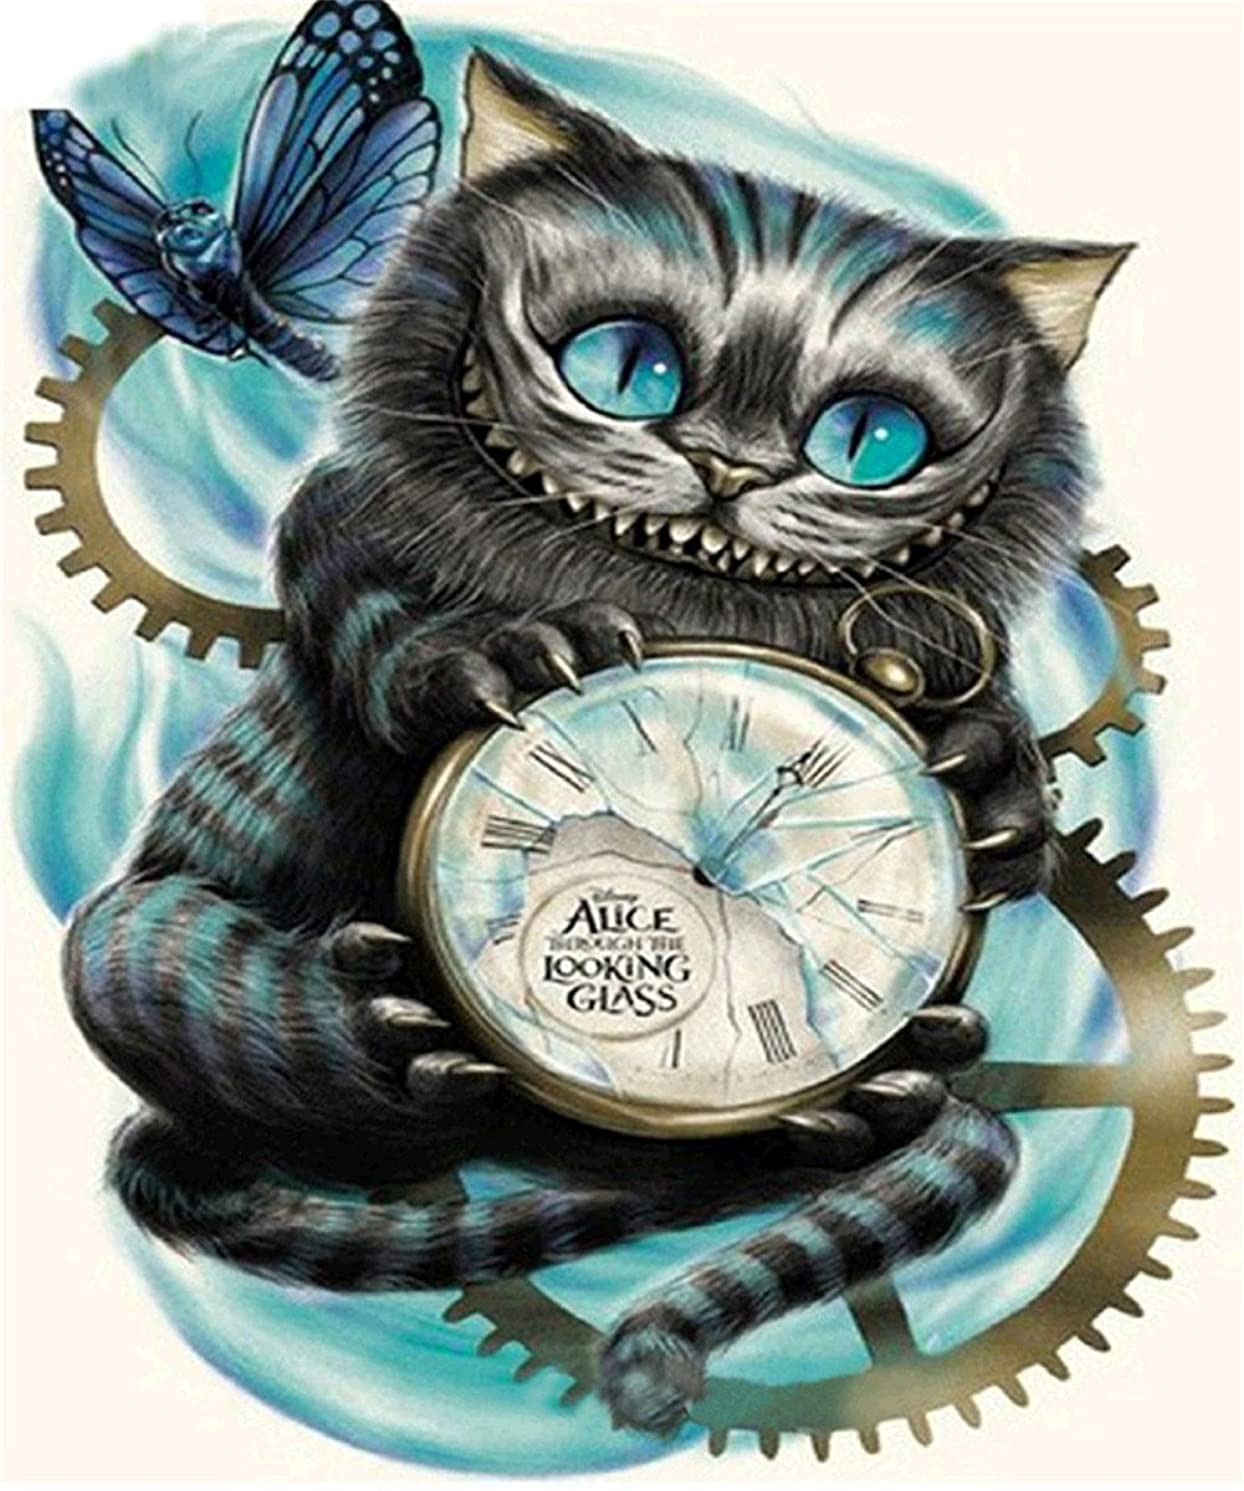 5D DIY Diamond Painting by Number Kits, Embroidery Painting Wall Sticker for Wall Decor - Cat with Clock, 12 x 16inch